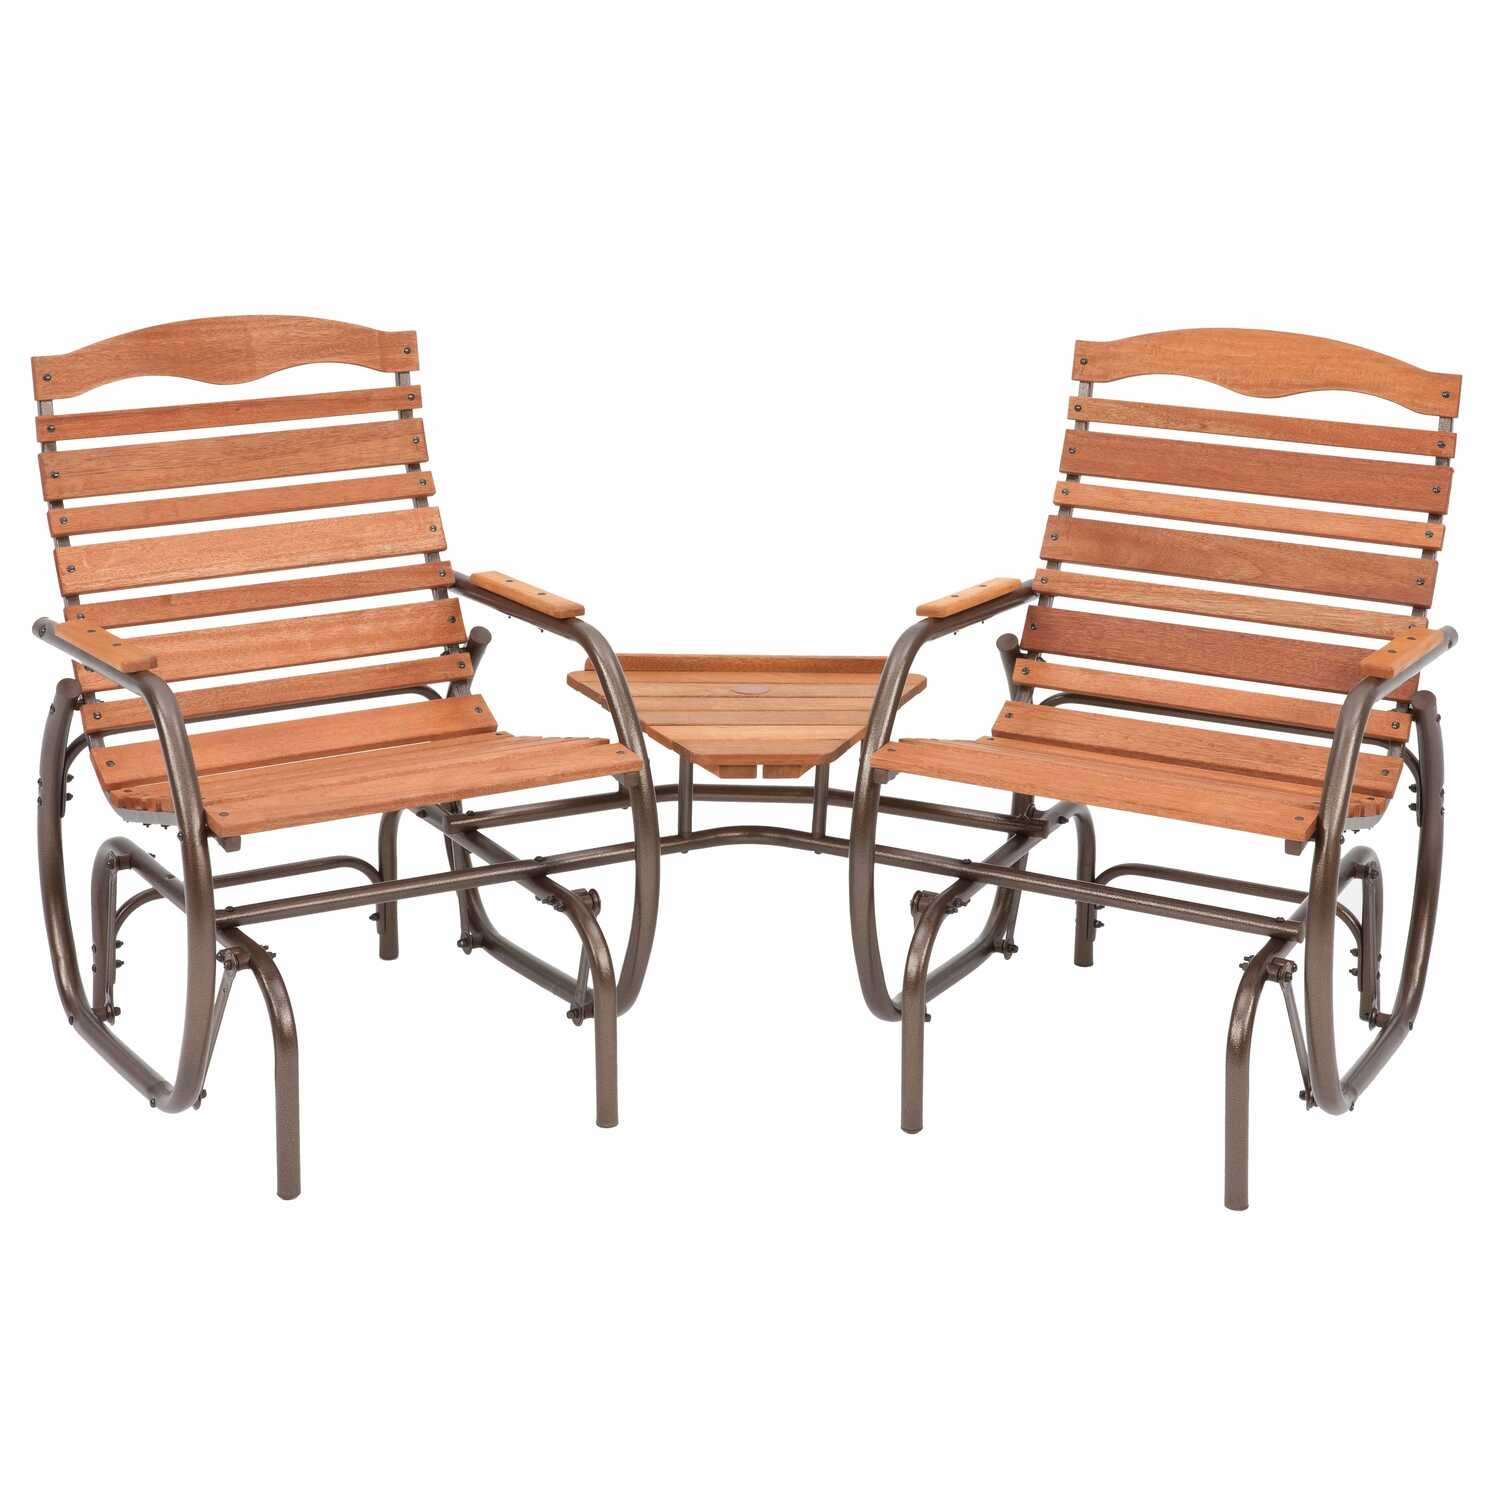 Jack Post  Country Garden  Steel  Glider Tete-a-Tete